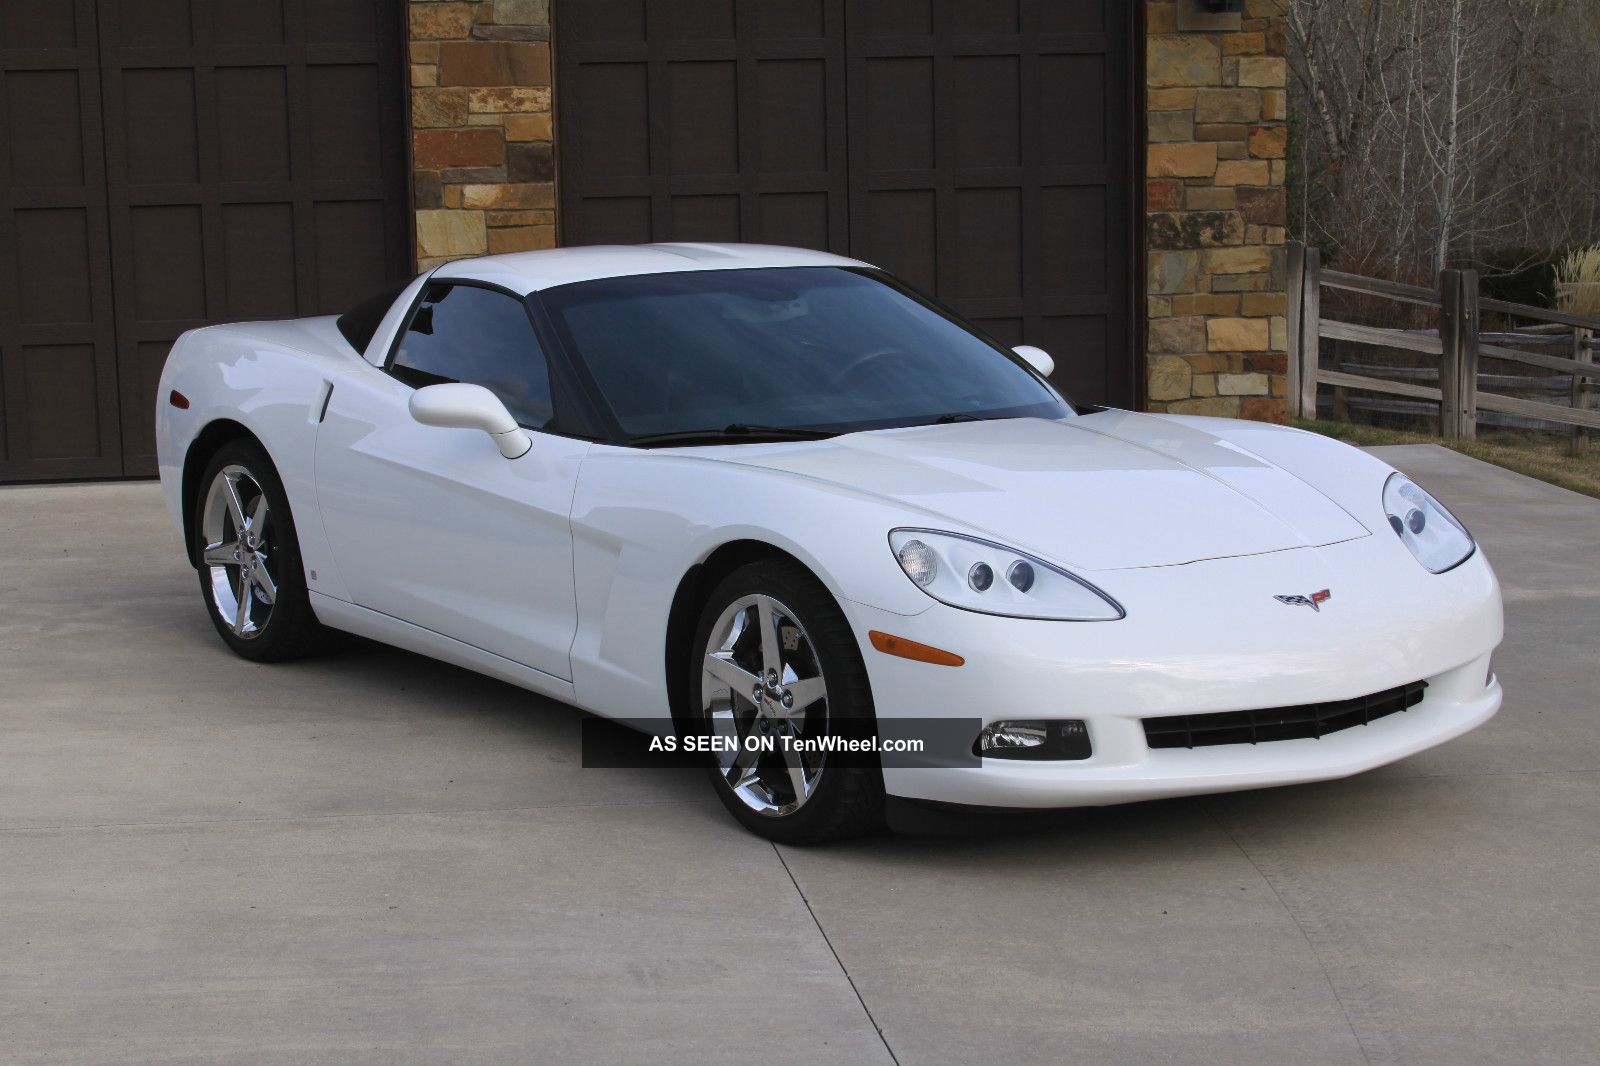 2006 chevrolet corvette c6 coupe. Black Bedroom Furniture Sets. Home Design Ideas